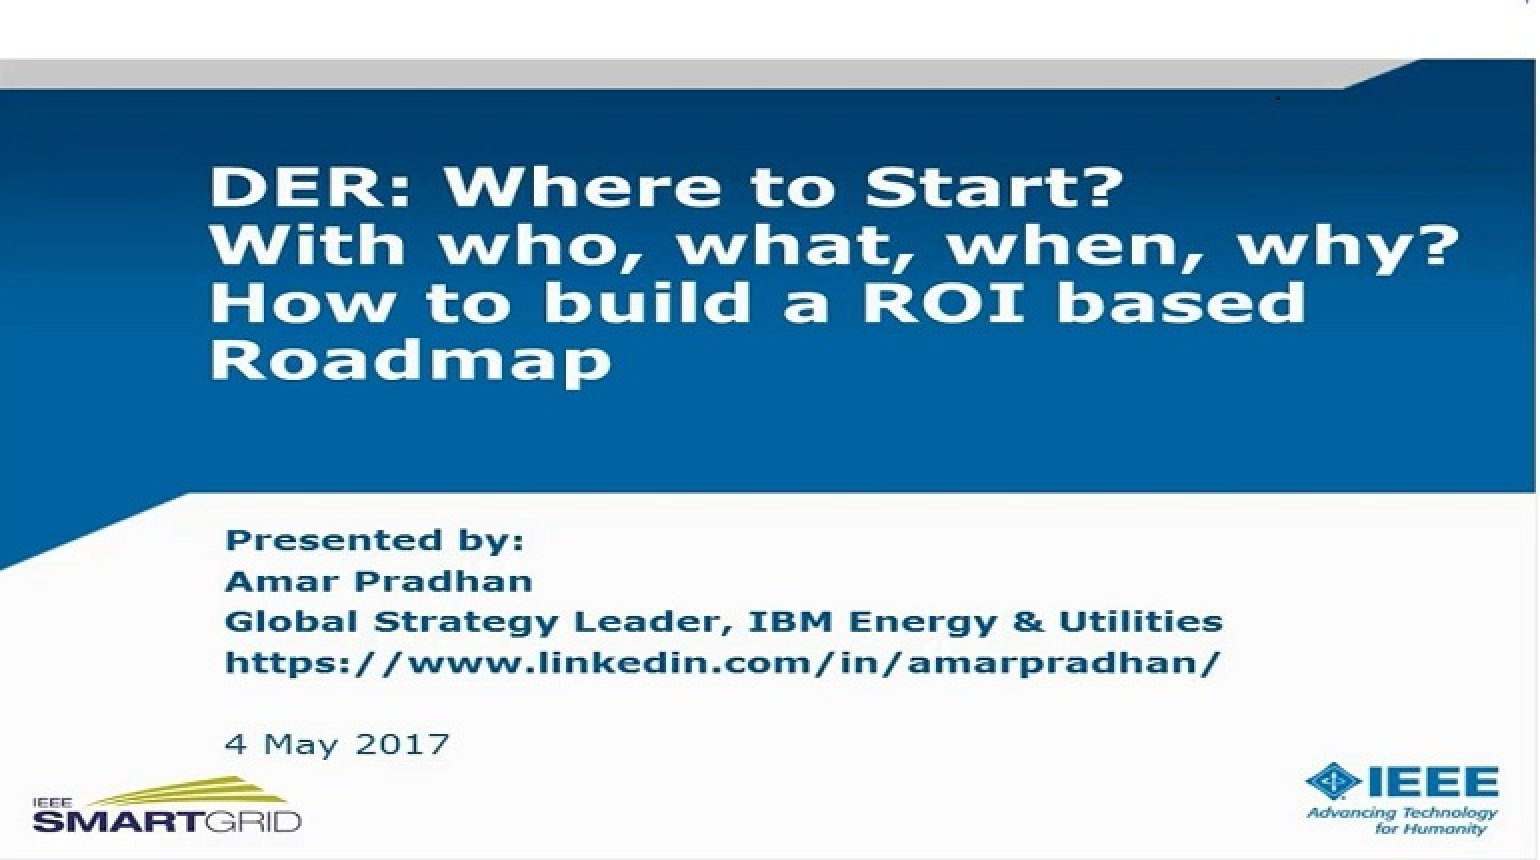 DER: Where to Start? With who, what, when, why? How to build a ROI based Roadmap presented by Amar Pradhan